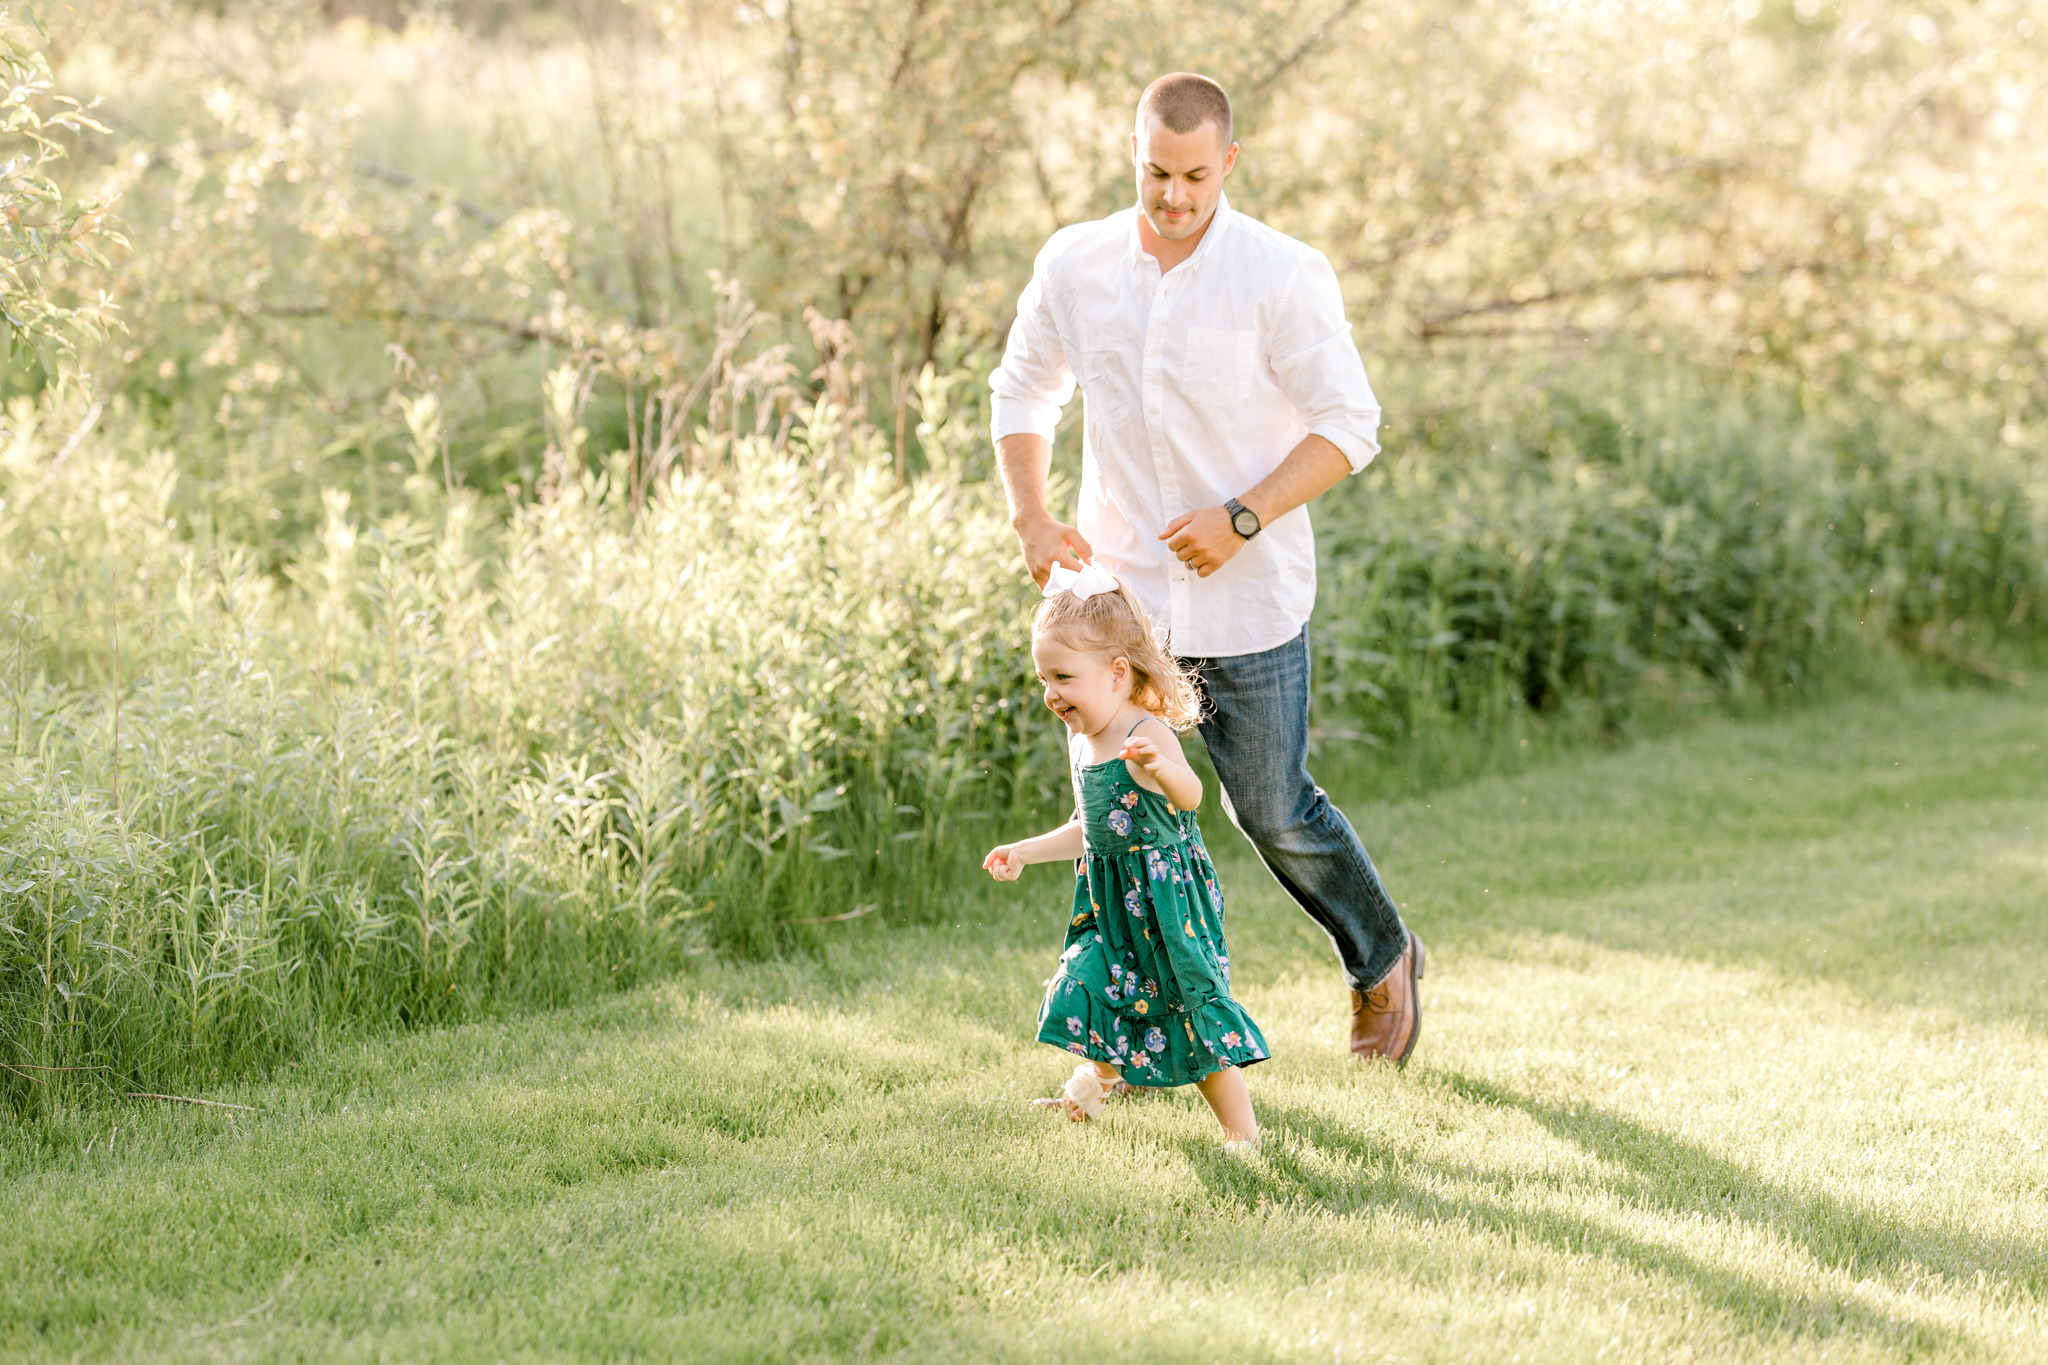 Beautiful Outdoor Summer Maternity Session at Golden Hour | Maternity Wardrobe | Maternity Session with Toddler | West Michigan Maternity Photographer